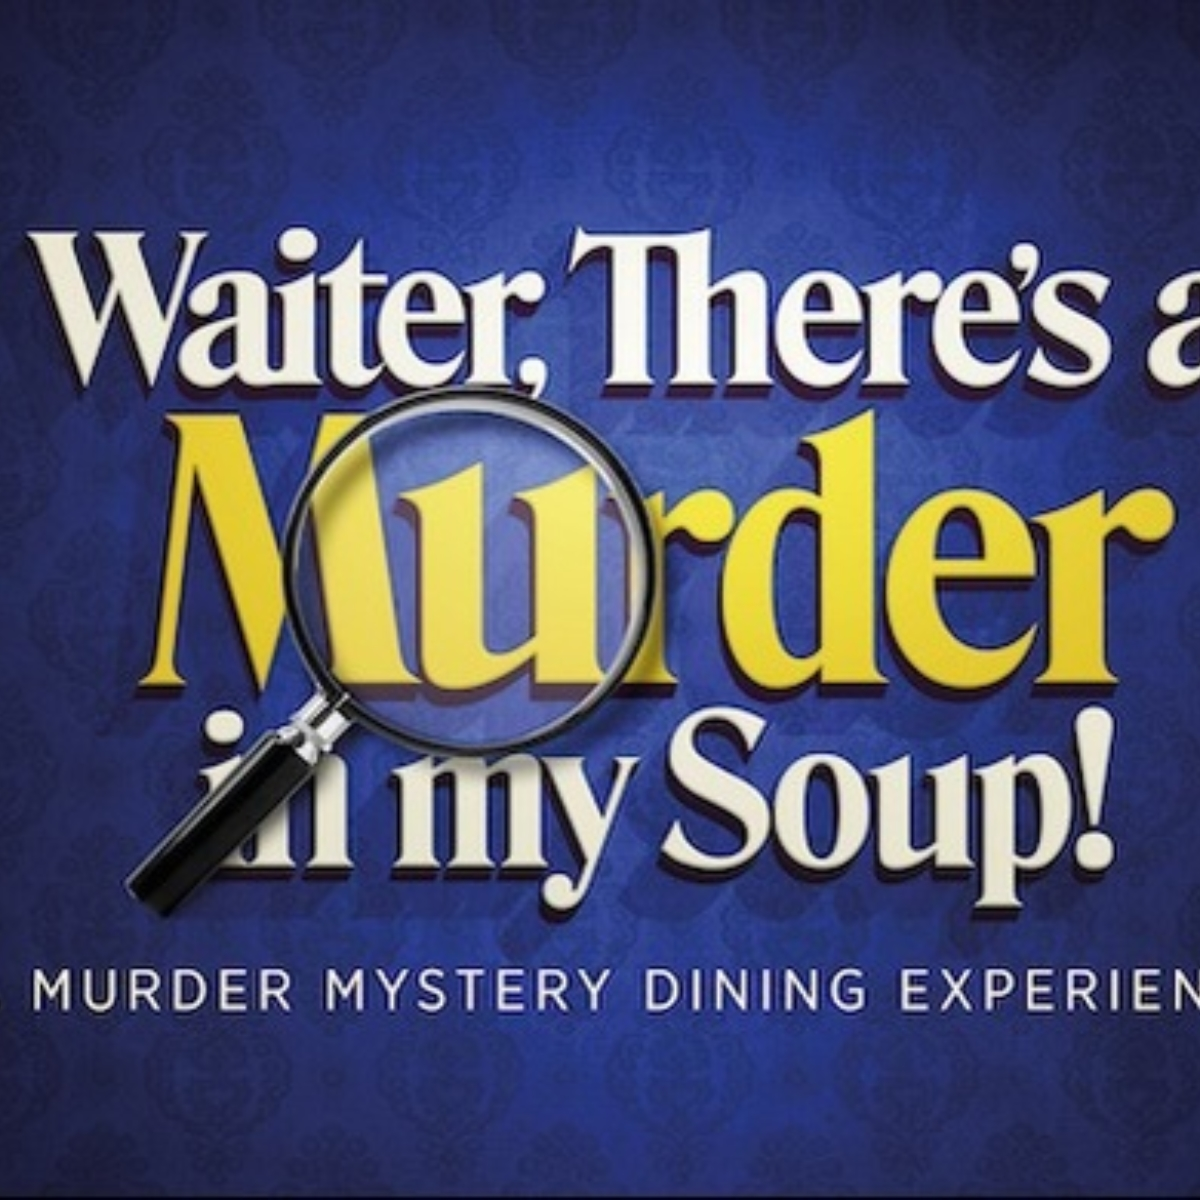 Waiter, There's a Murder in my Soup! Images